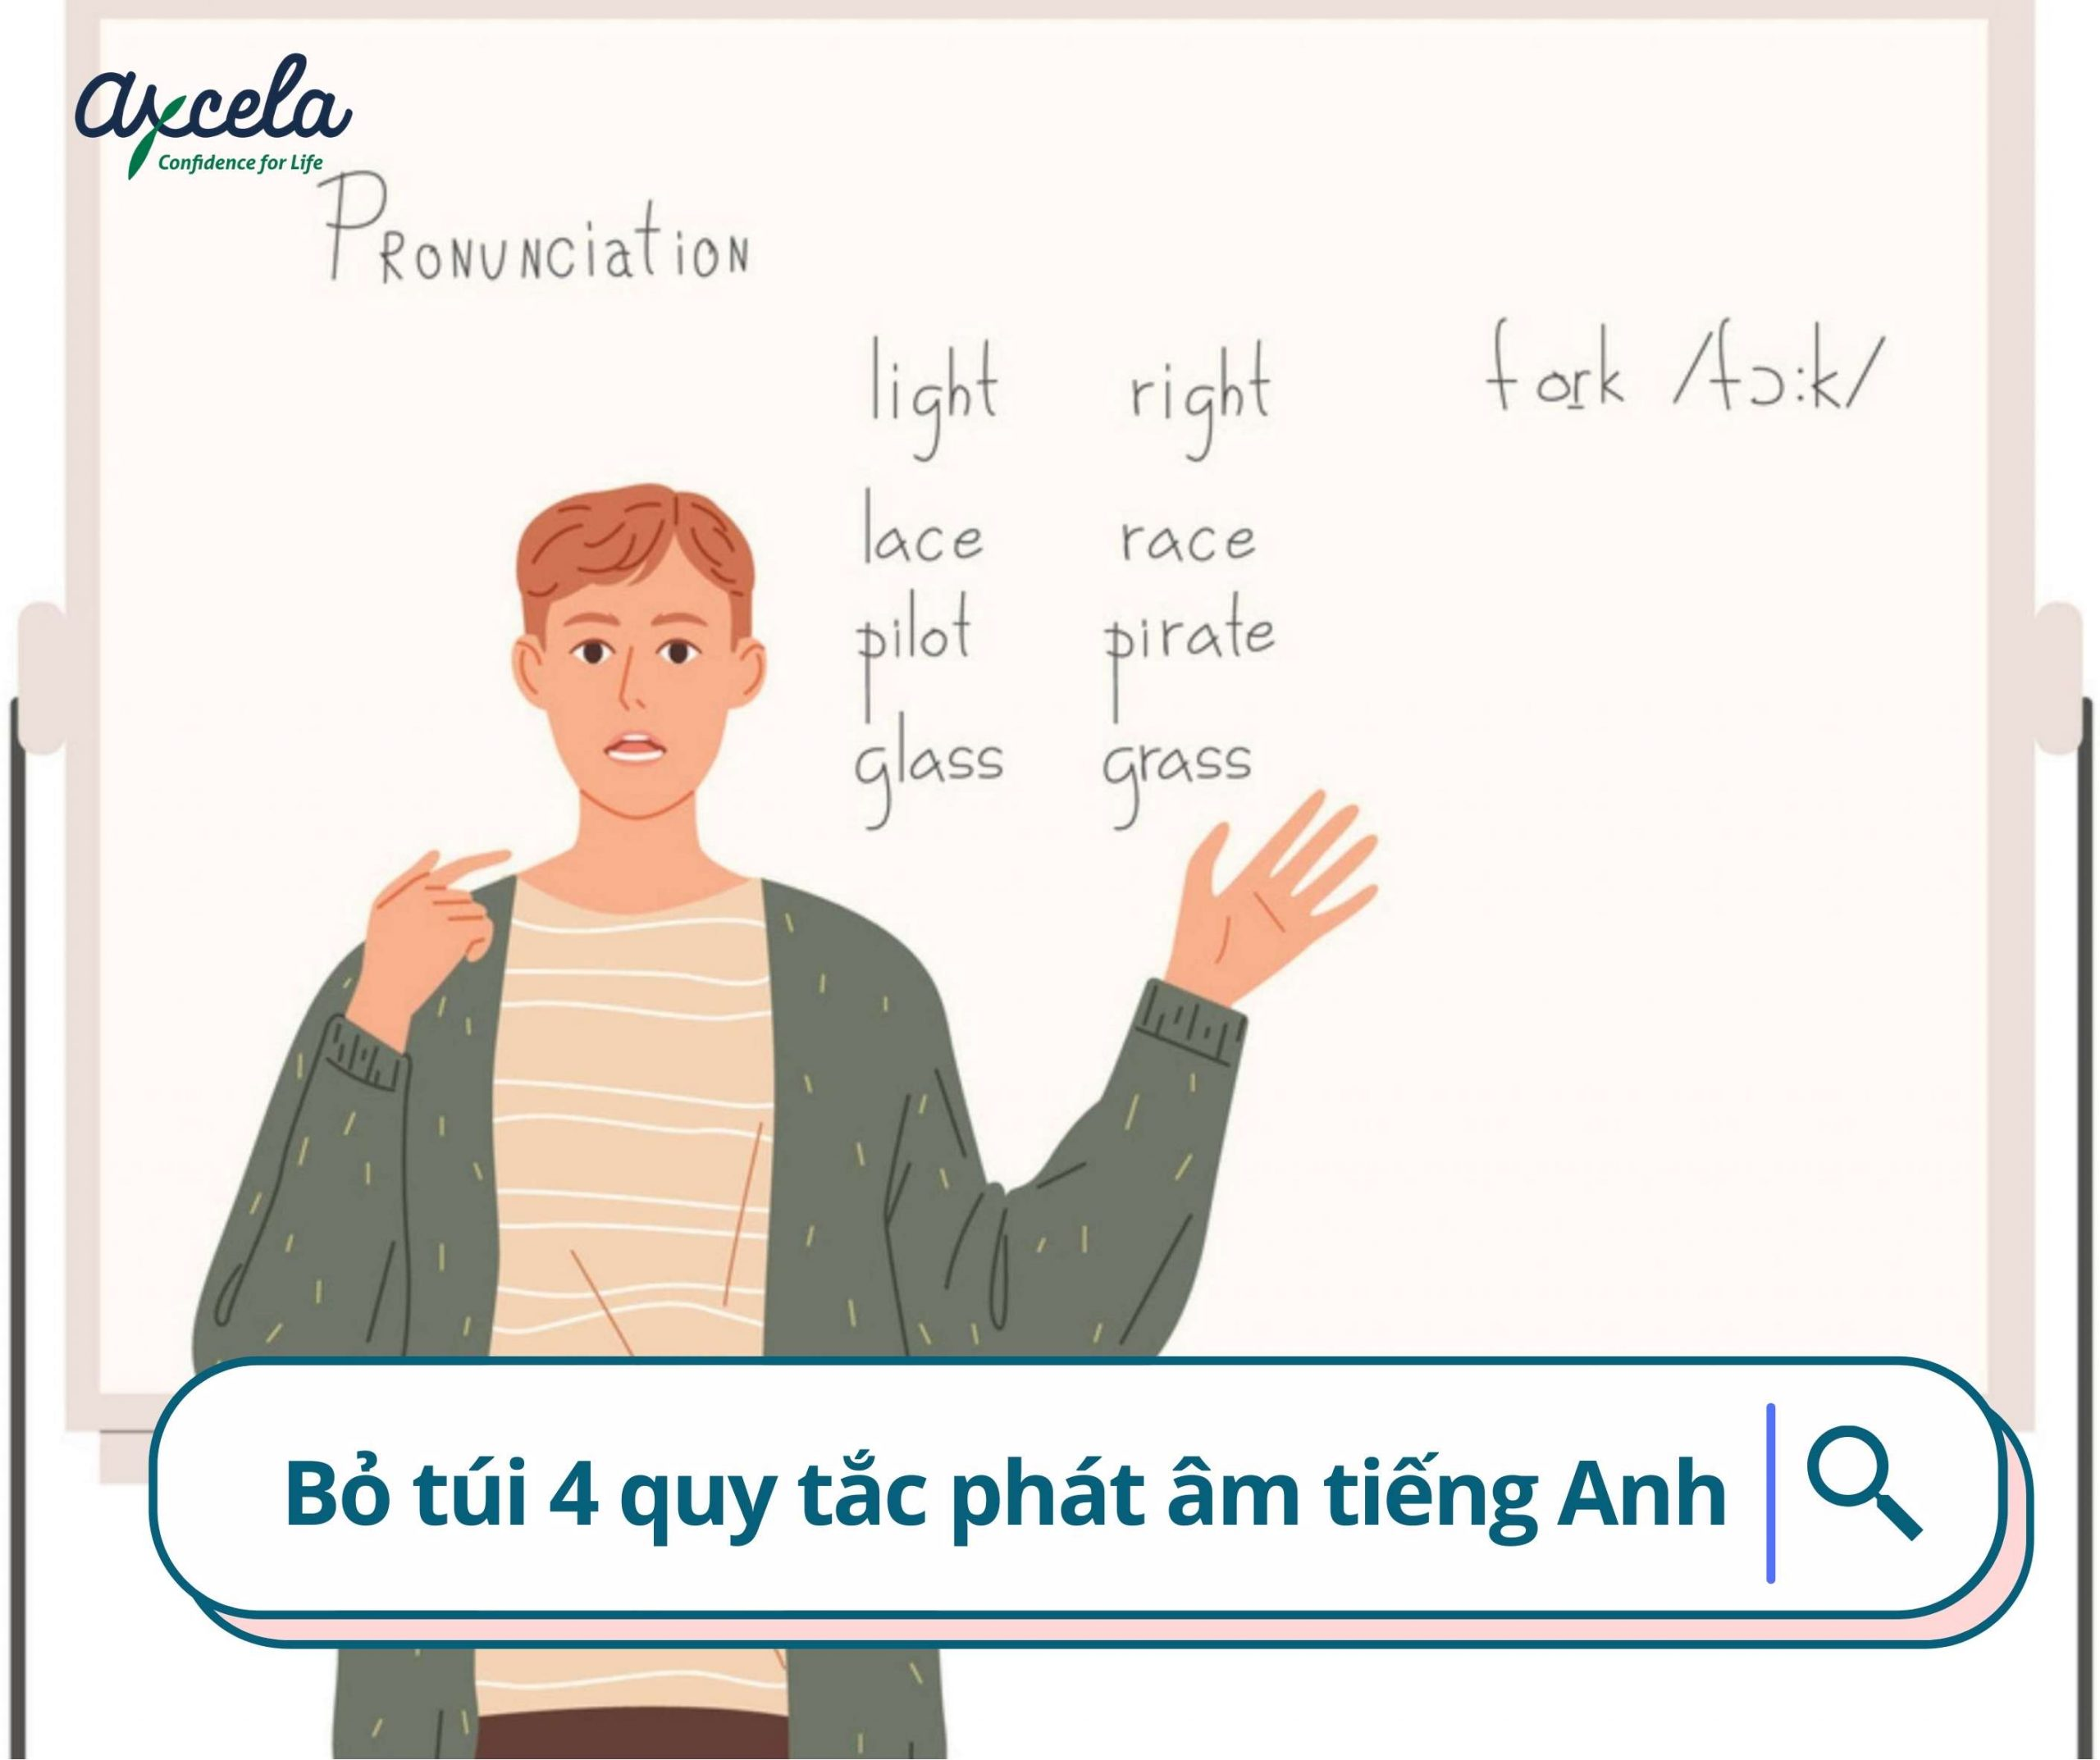 bo-tui-4-quy-tac-phat-am-tieng-anh